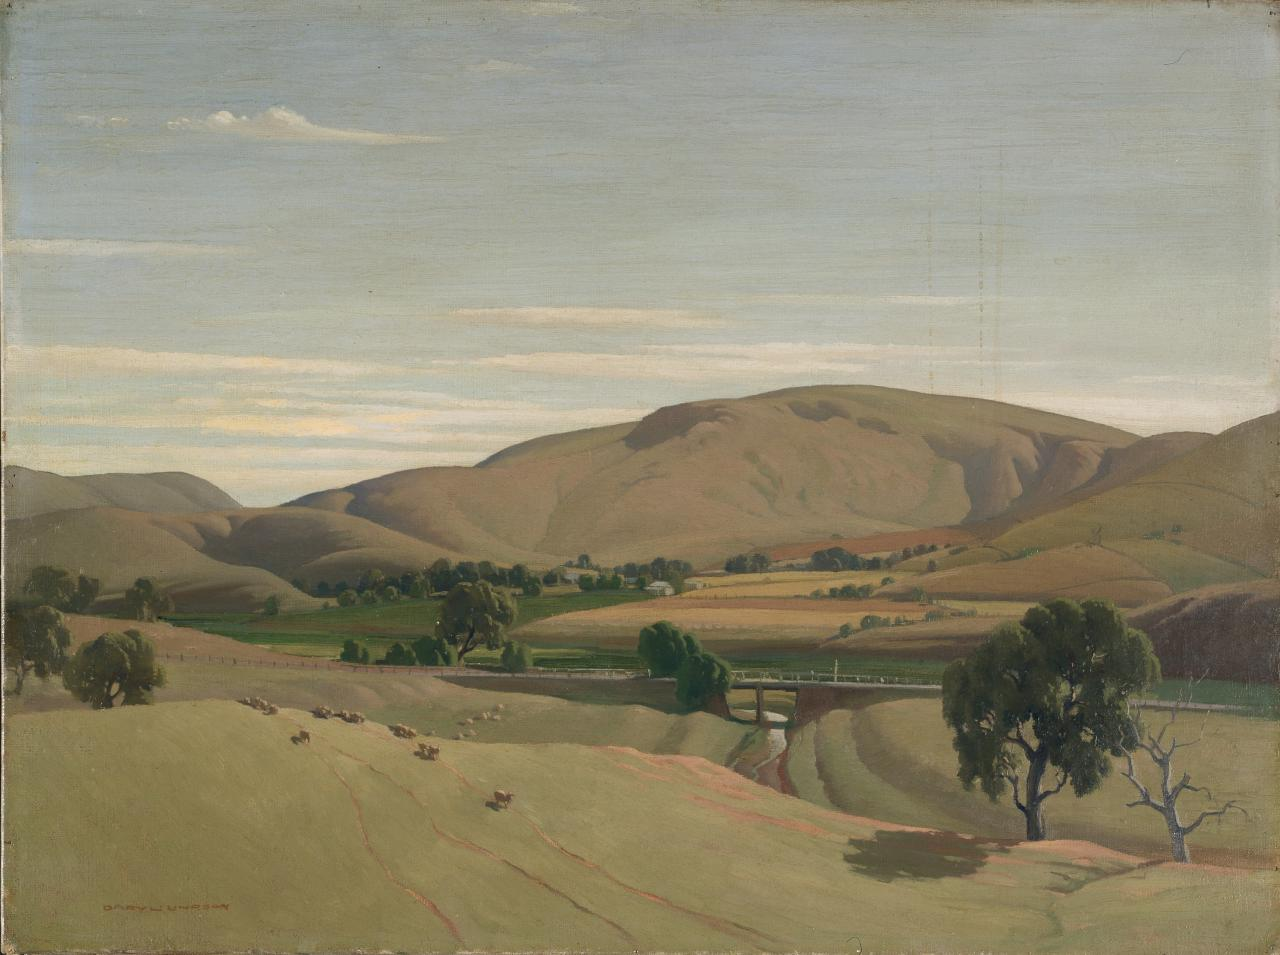 Landscape at Bacchus Marsh